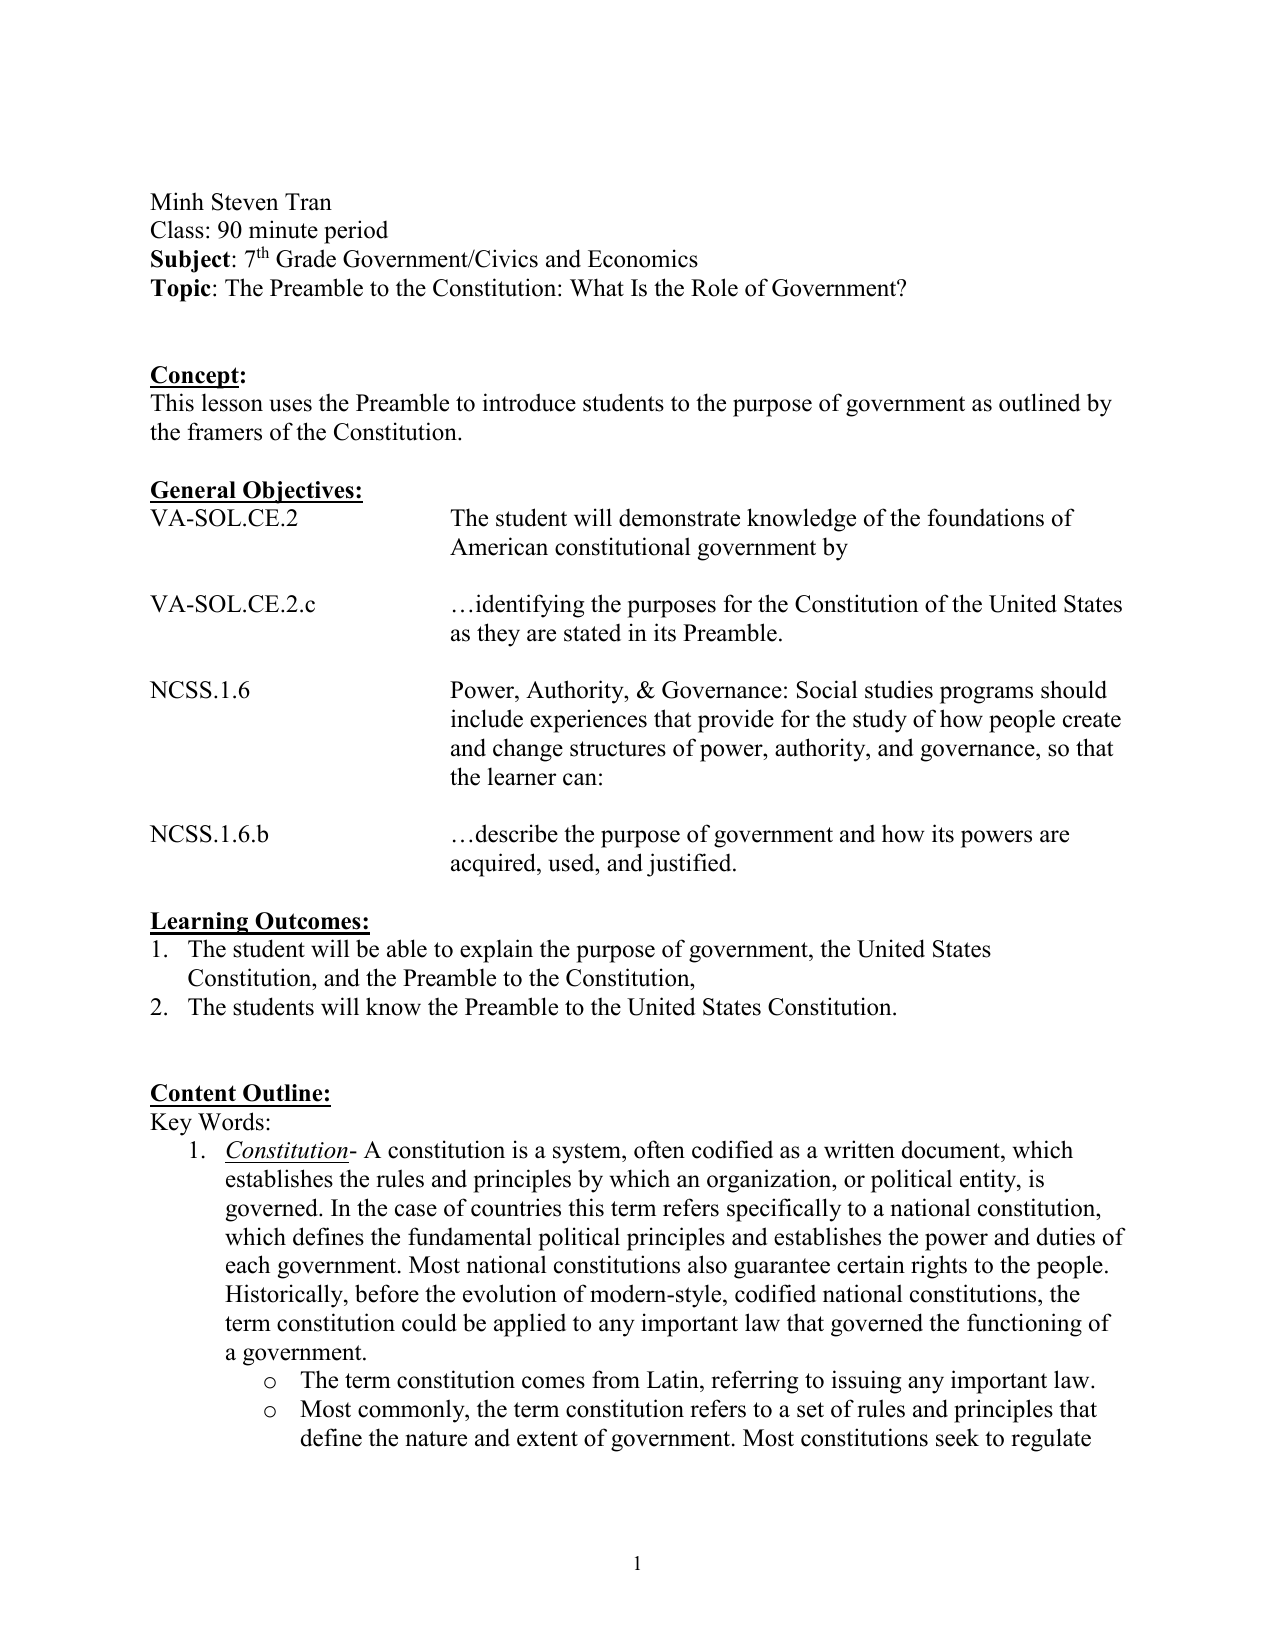 Worksheets Preamble To The Constitution Worksheet vi preamble to the constitution constitution